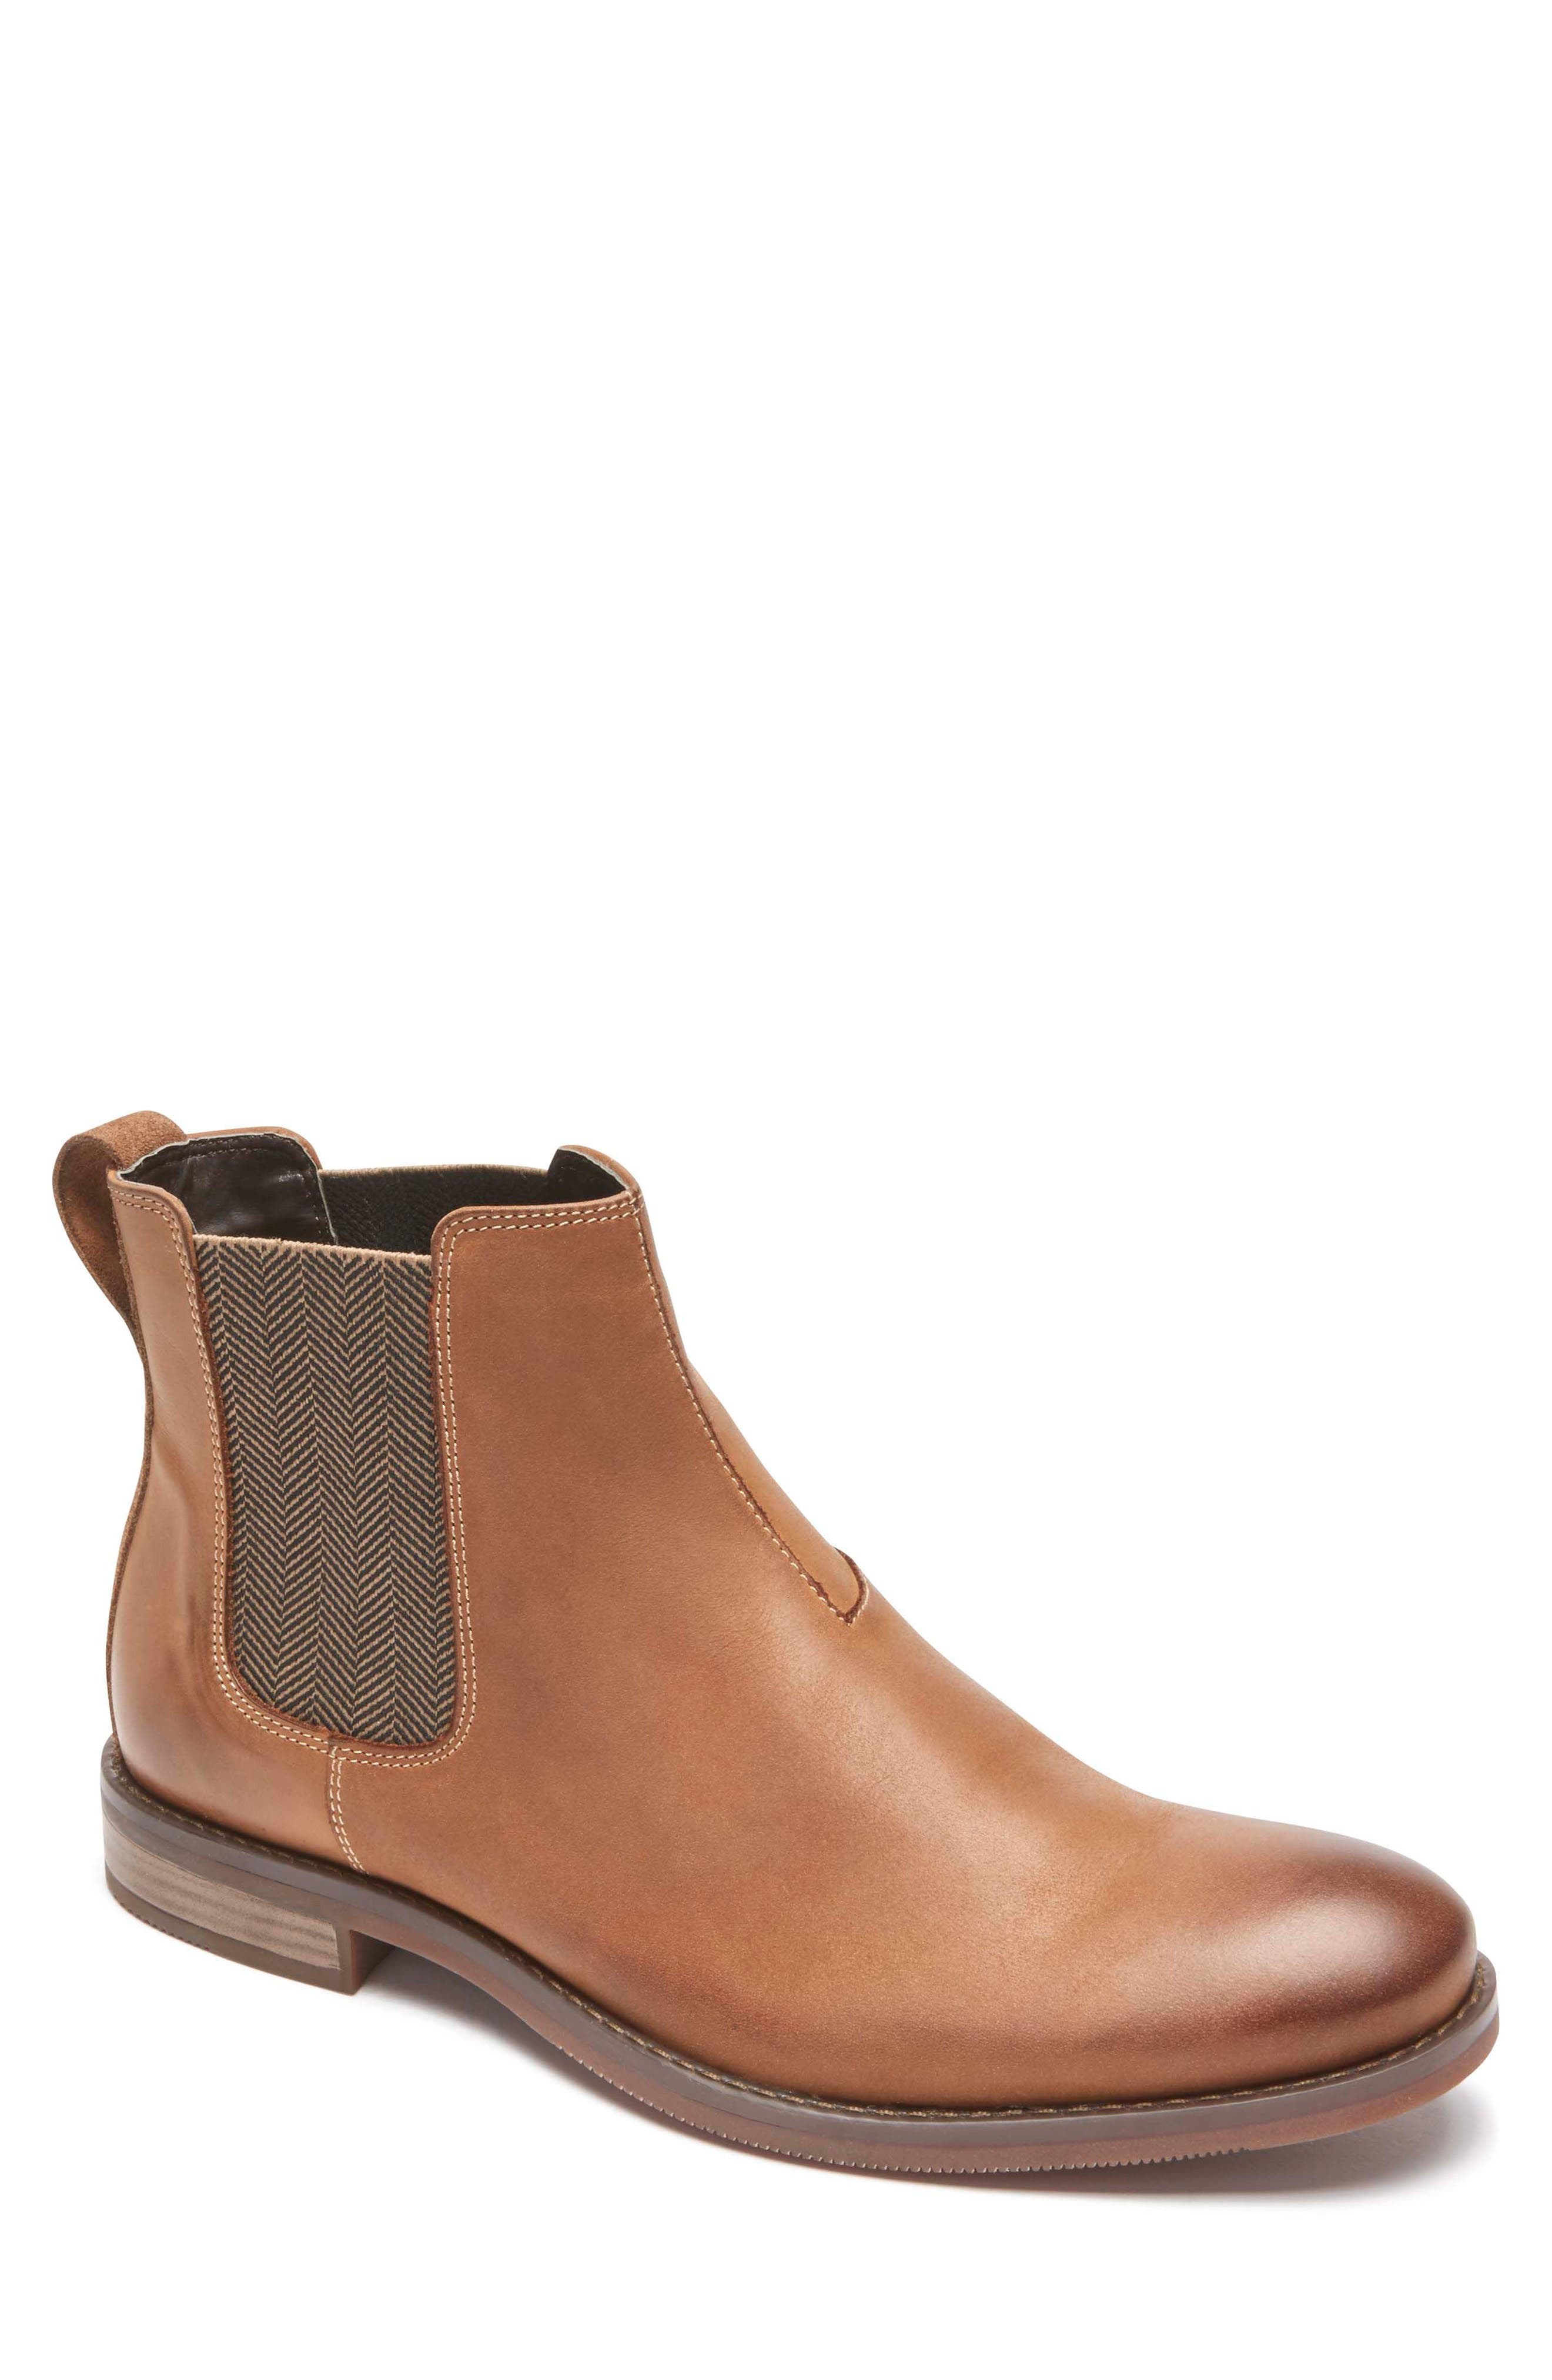 Wynstin Chelsea Boot,                             Main thumbnail 1, color,                             Tobacco Leather